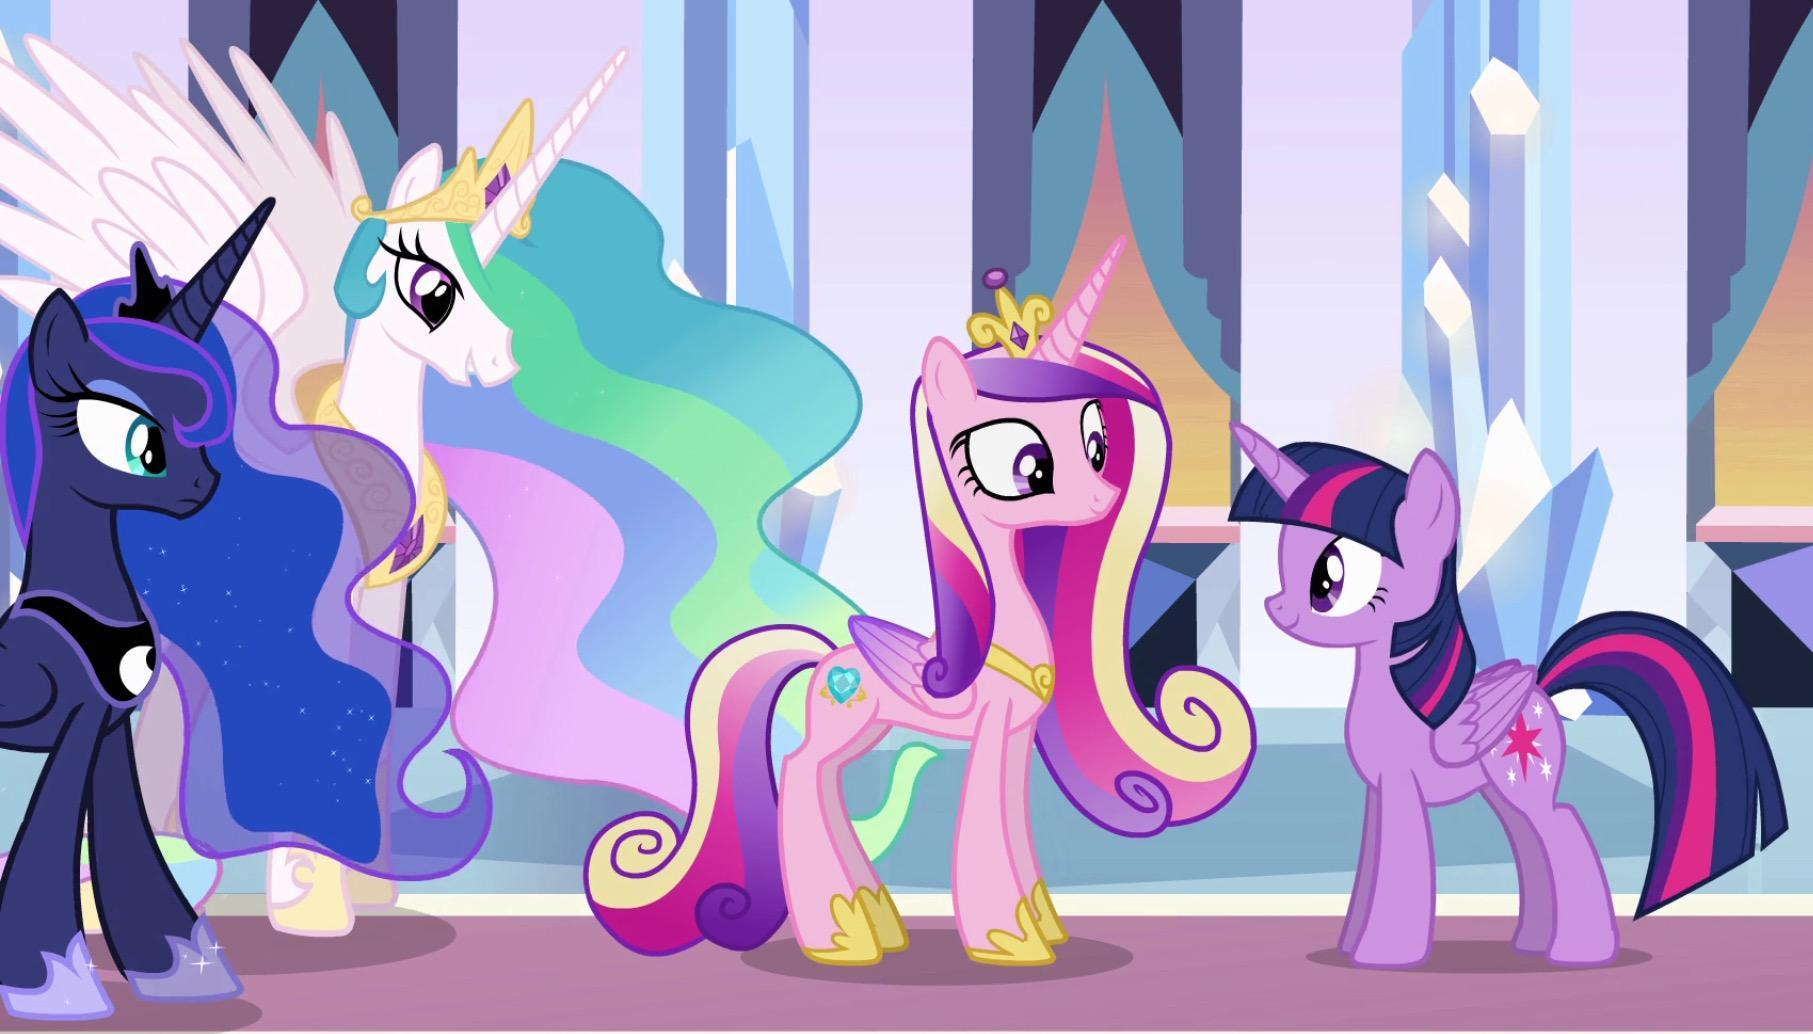 Whitch My Little Pony Princess are you?